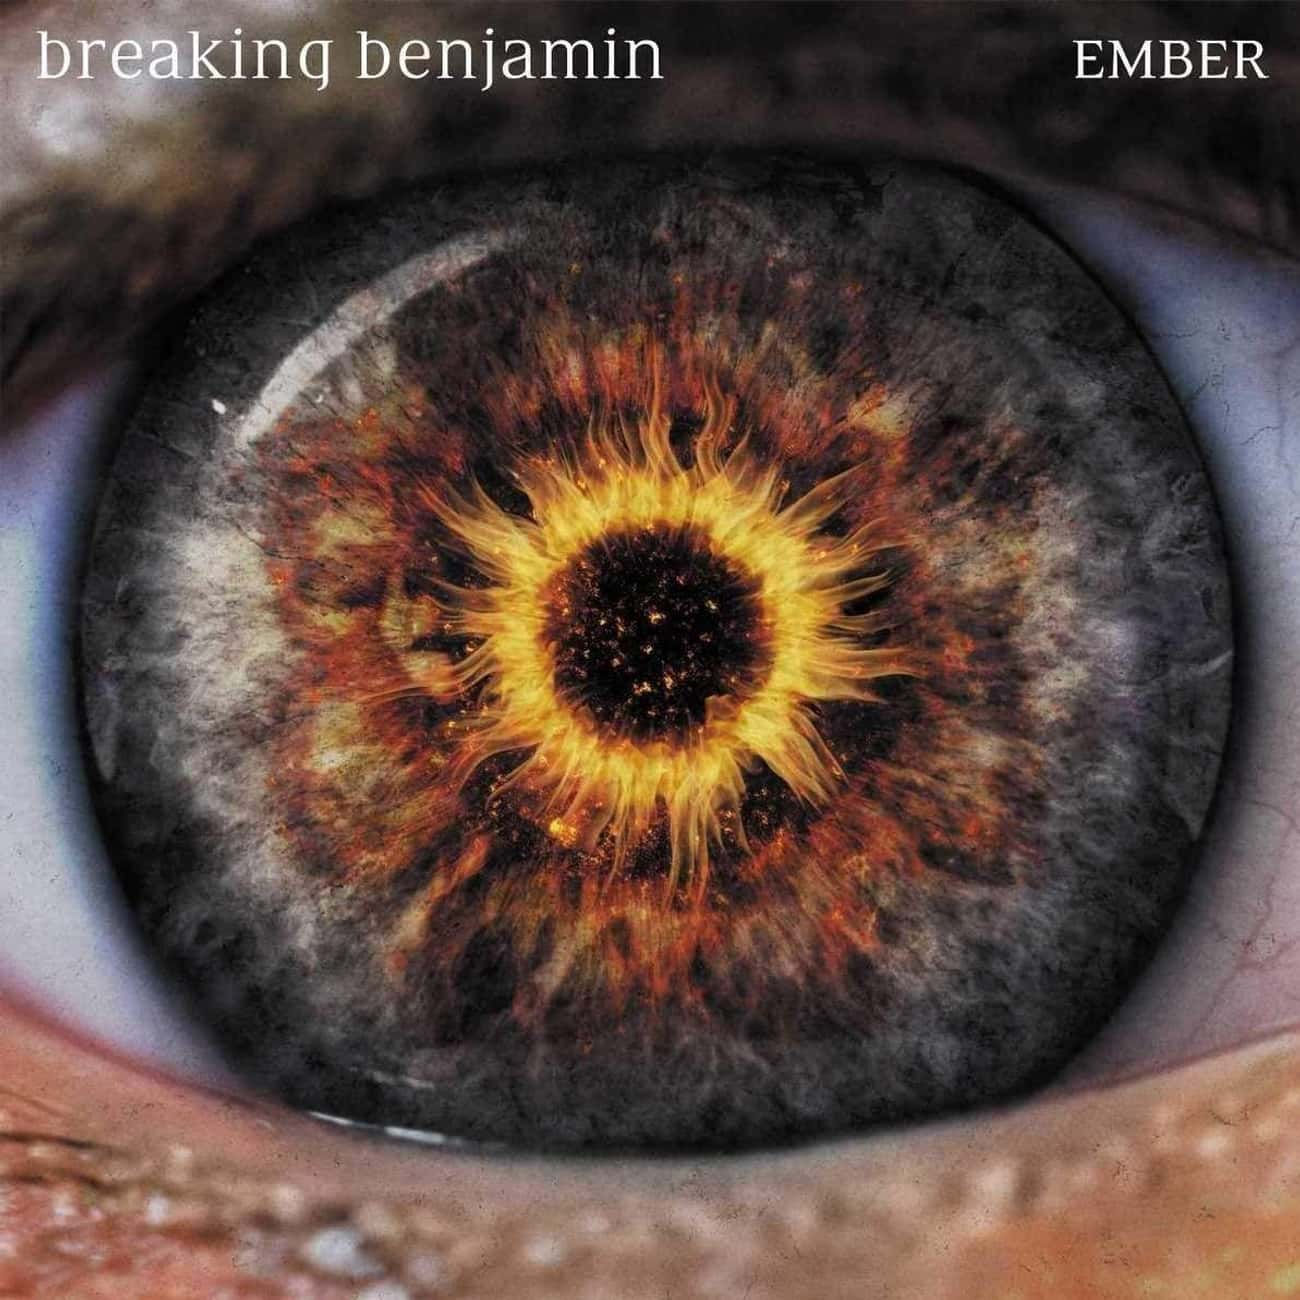 Ember is listed (or ranked) 2 on the list The Best Breaking Benjamin Albums of All Time